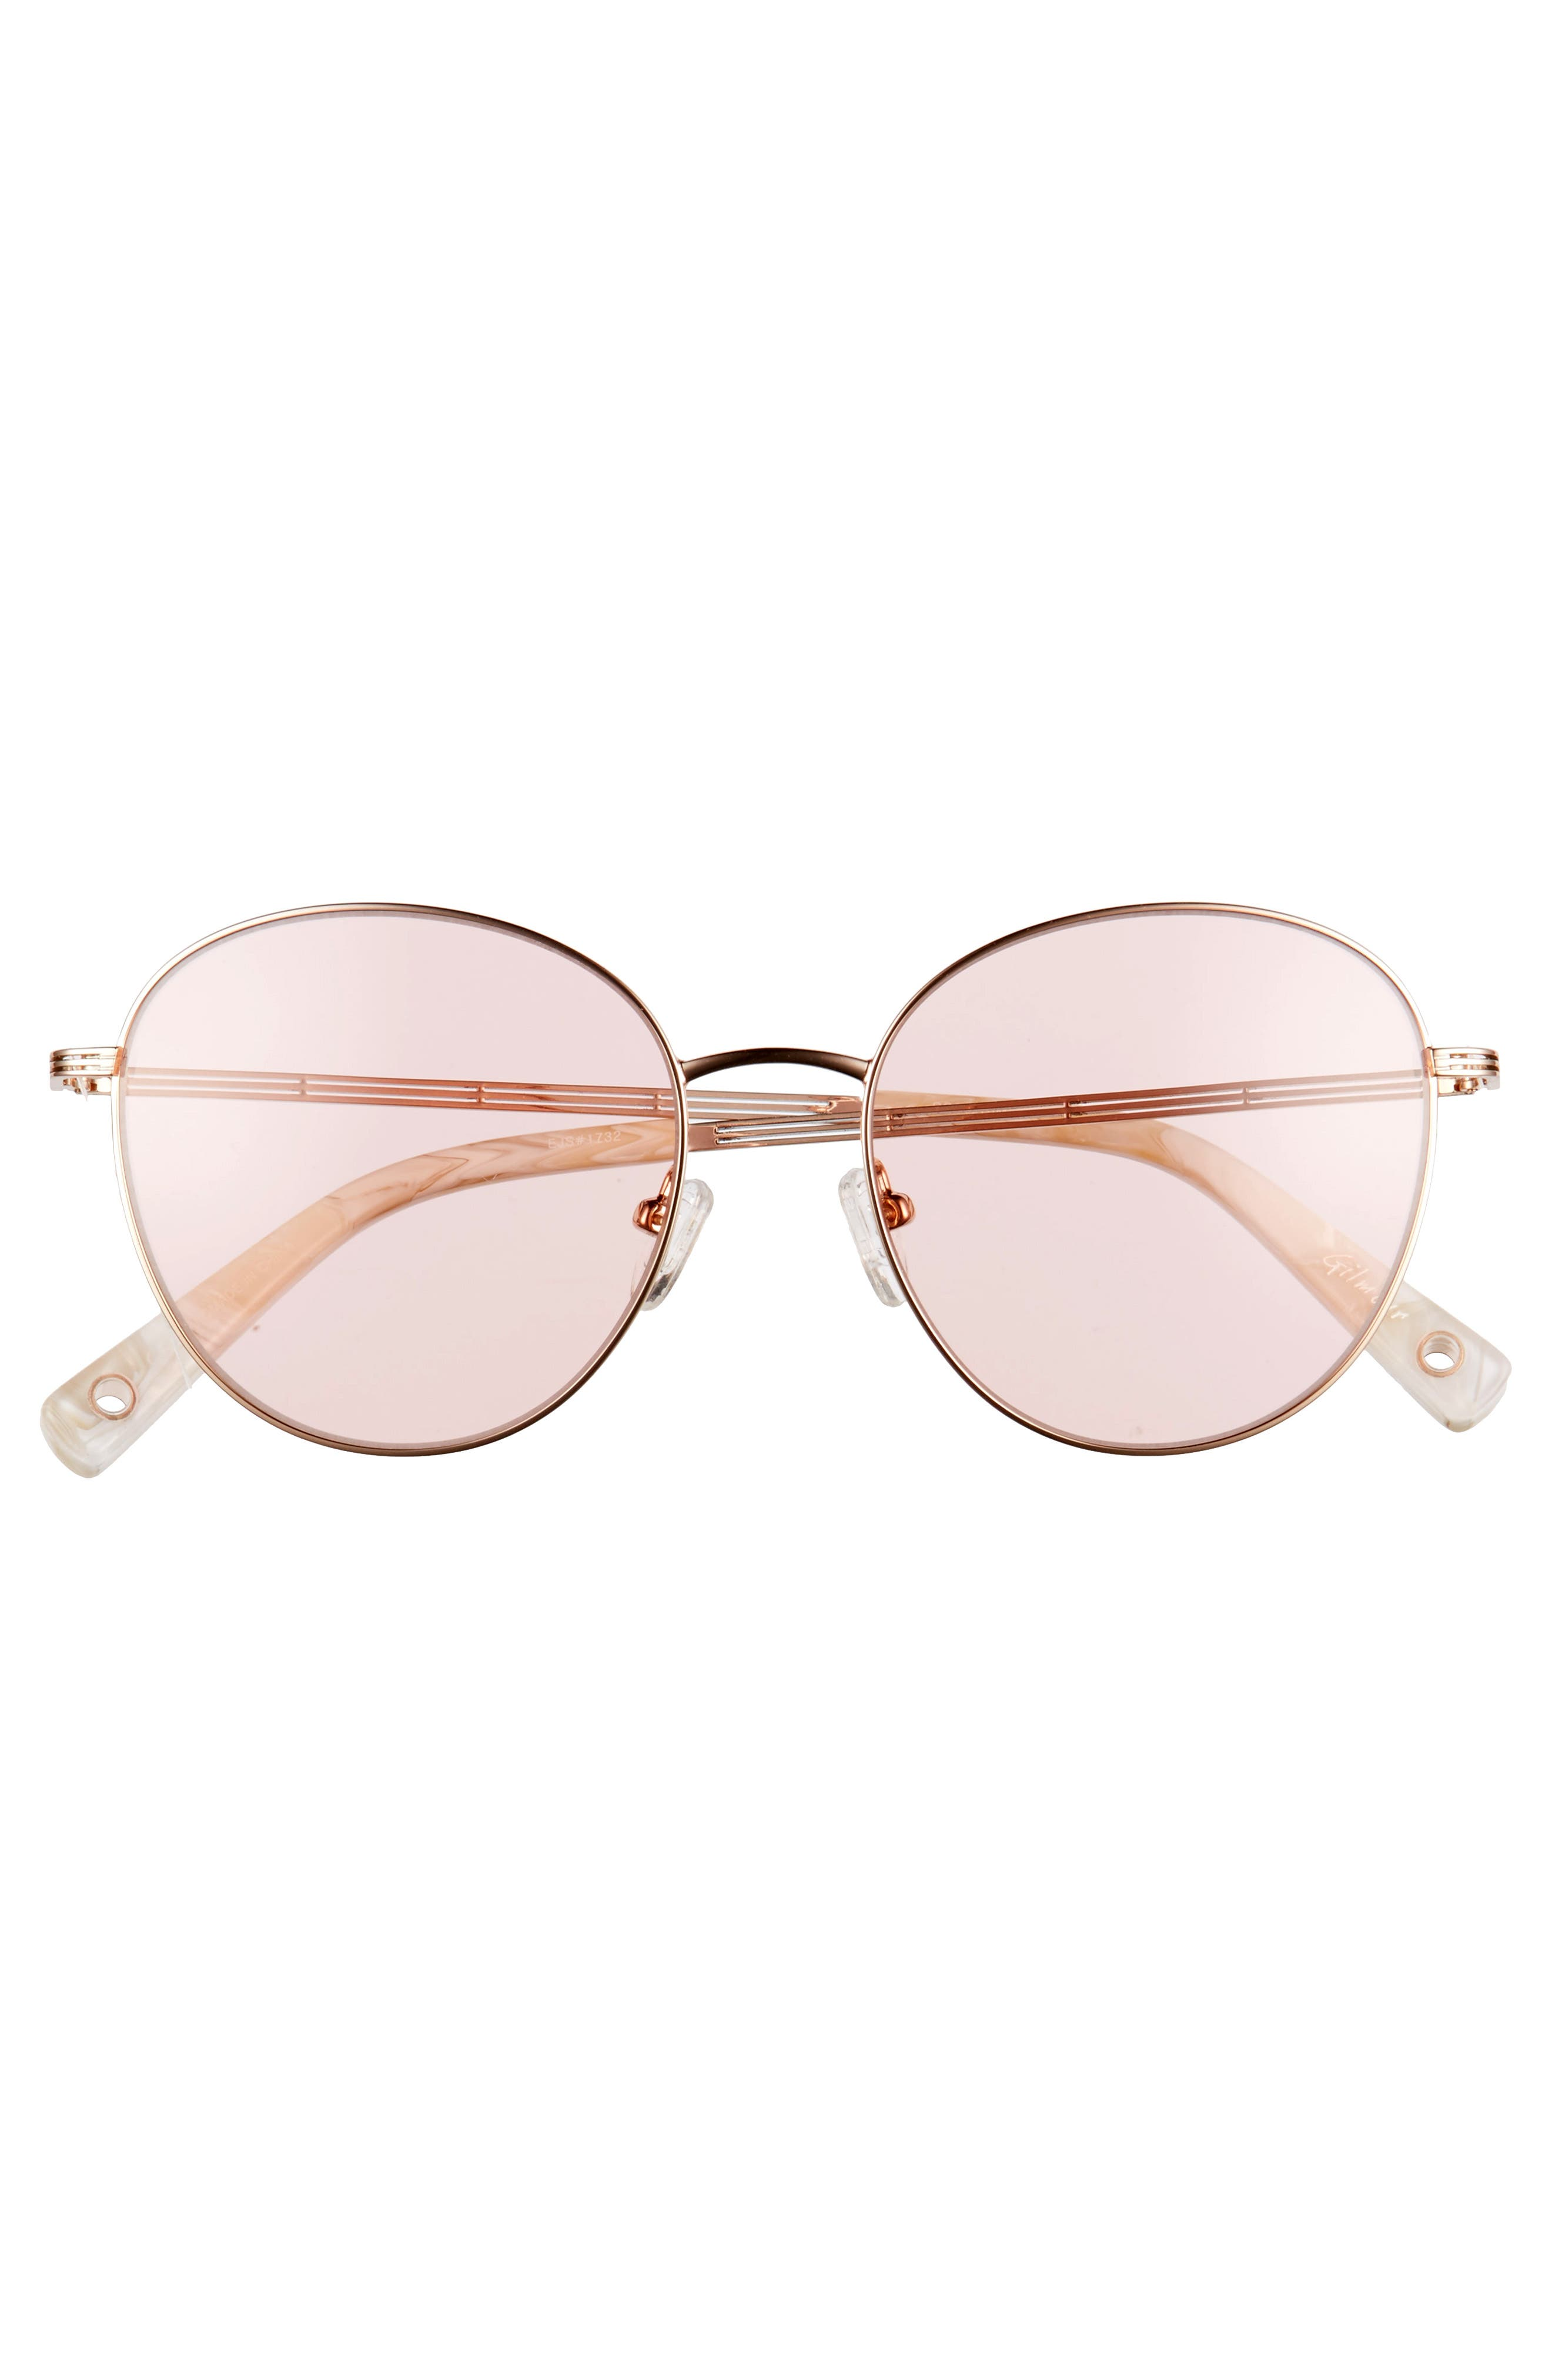 Gilmour 53mm Round Sunglasses & Beaded Chain,                             Alternate thumbnail 9, color,